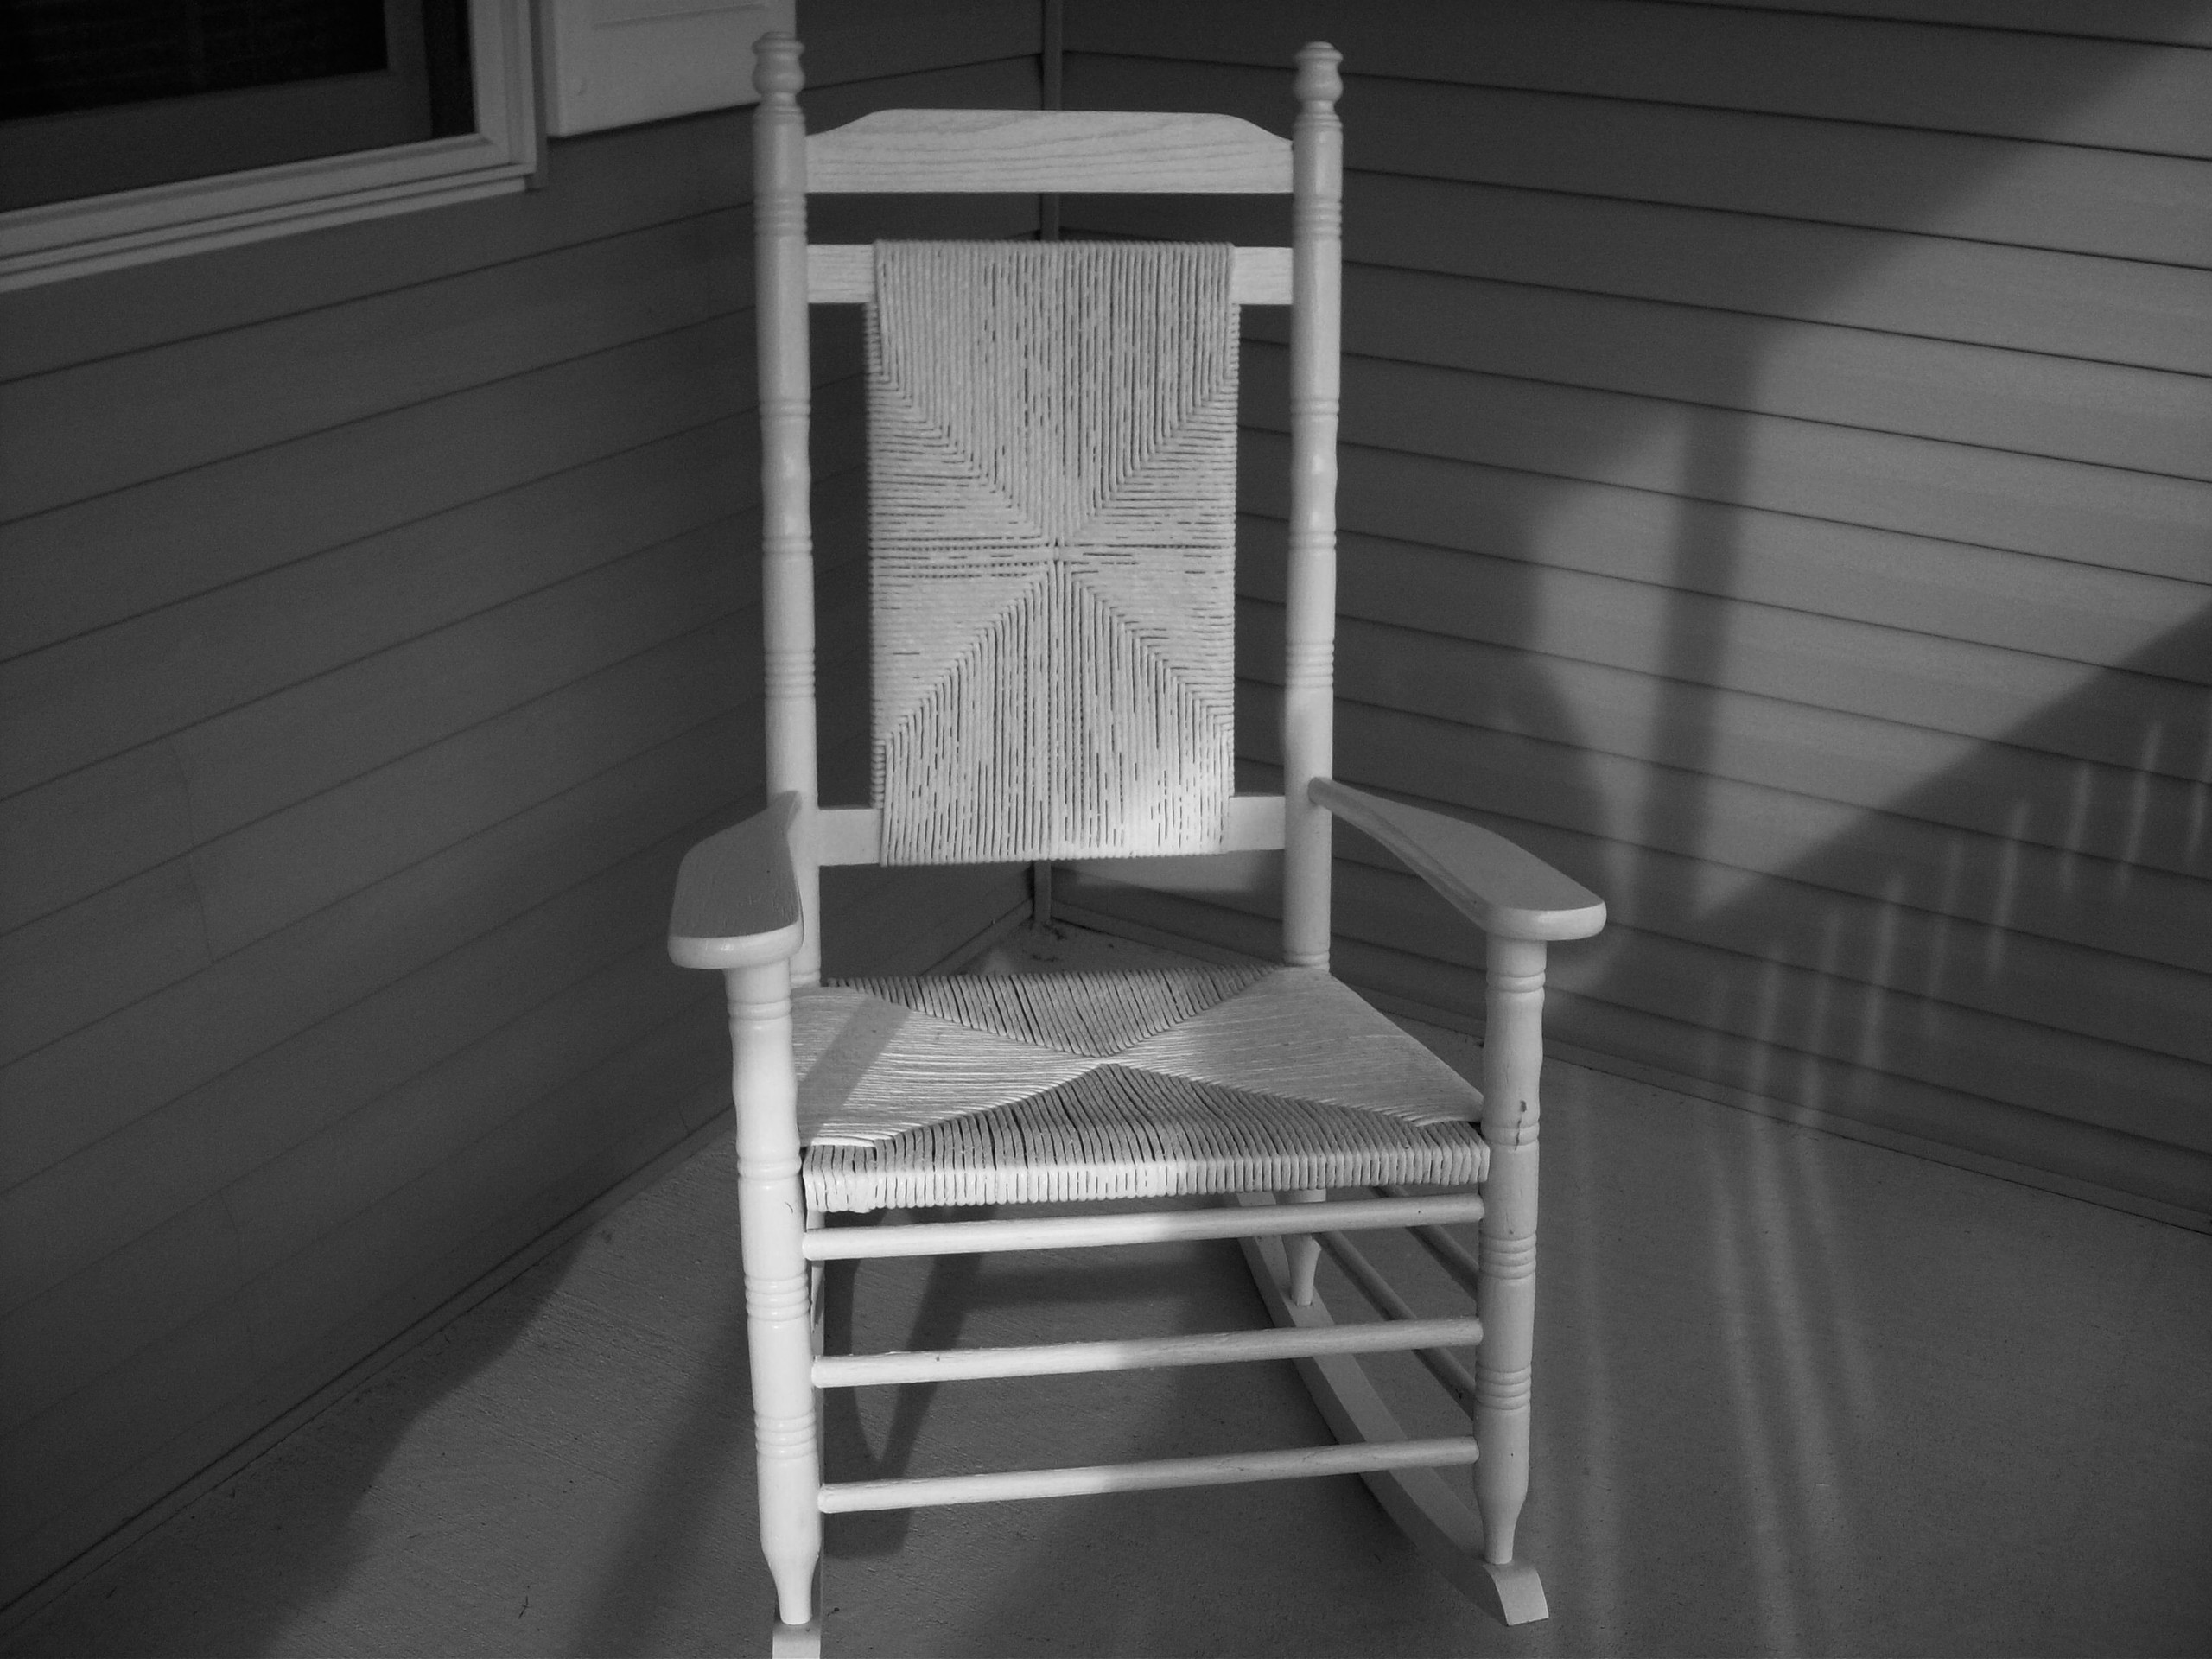 Black and white chair photography - 49 Best Images About Chairs On Pinterest Key West Florida Vintage Porch And Adirondack Chairs